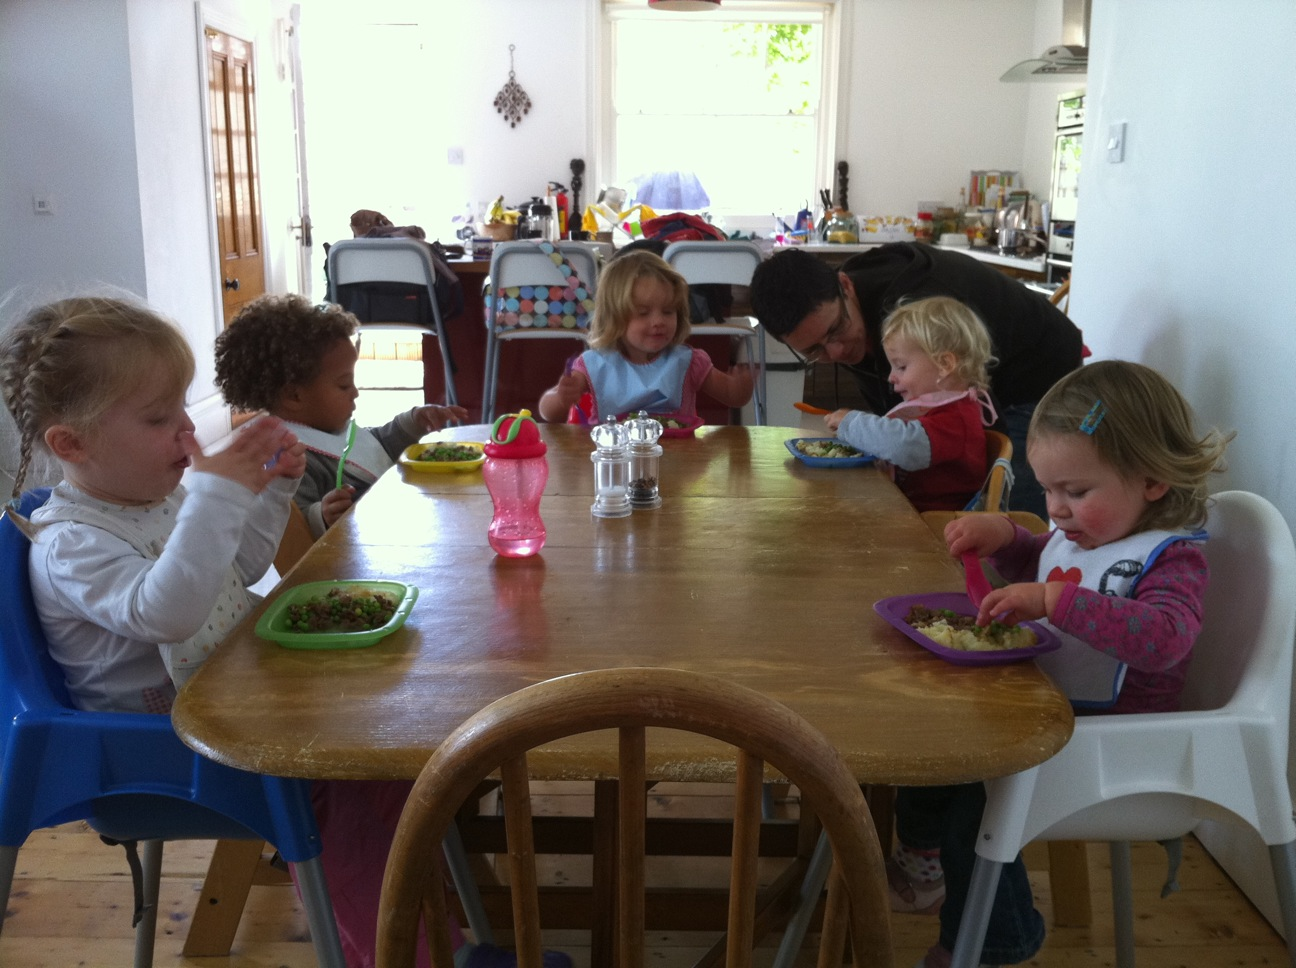 Managing mealtimes with children